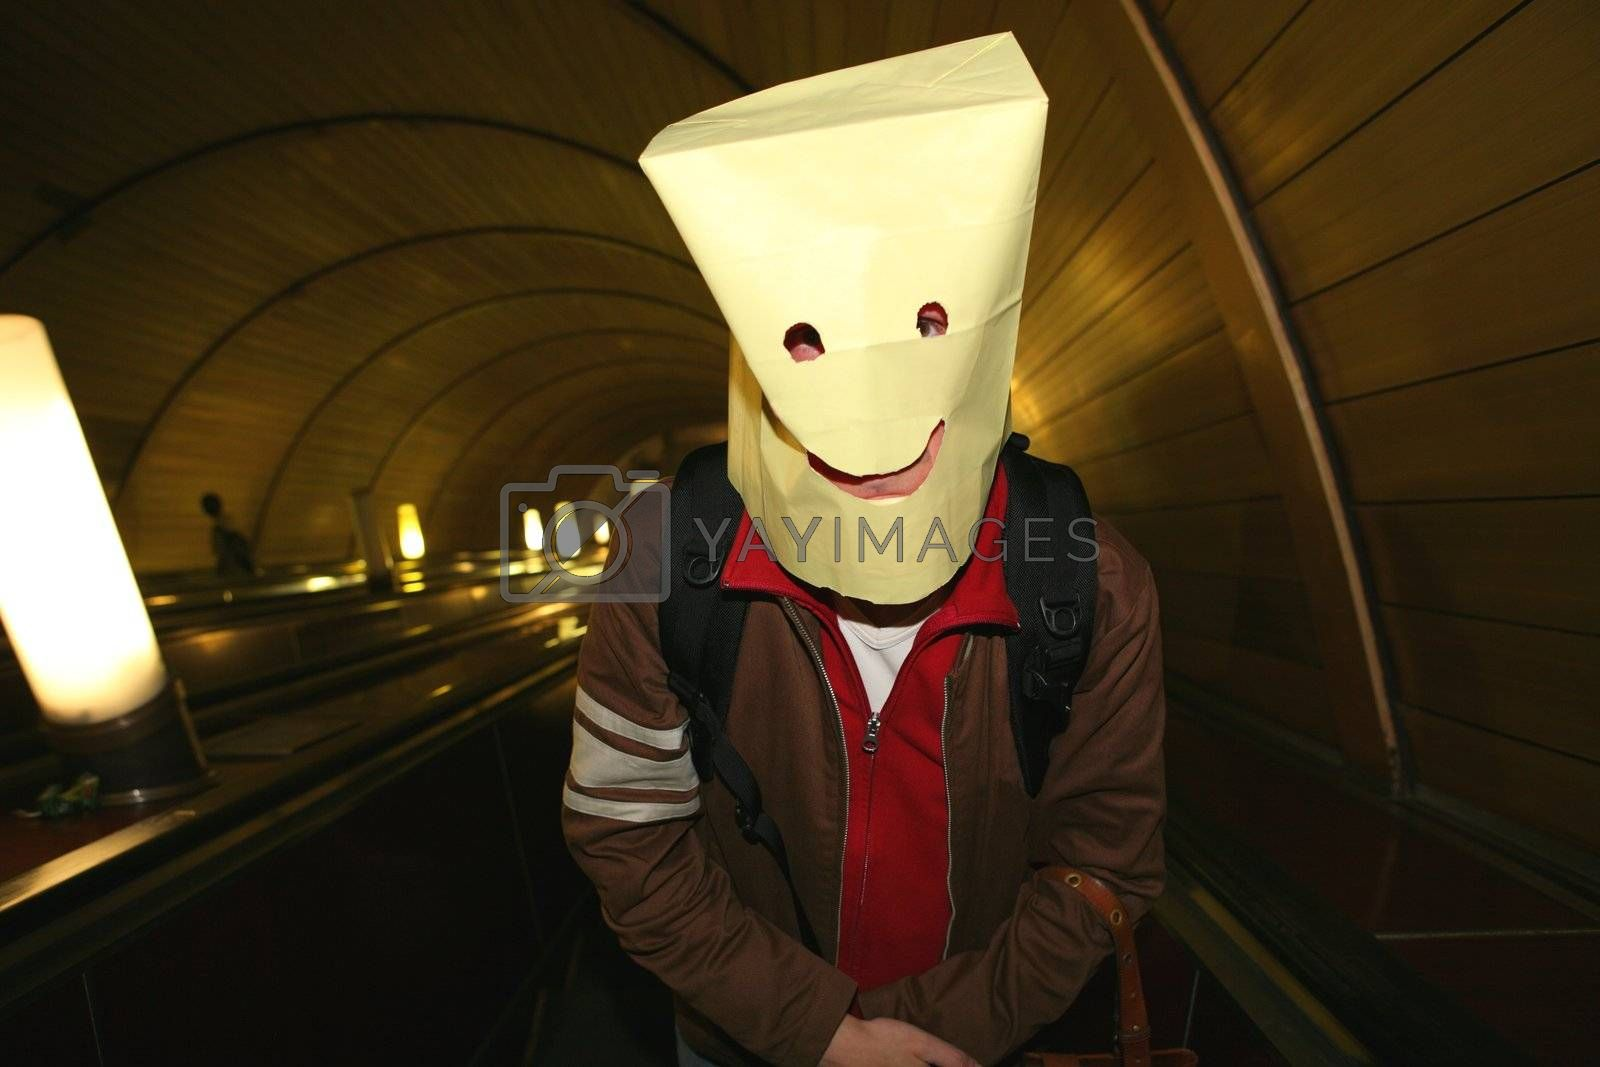 Royalty free image of Package-Head, Funny Smiling Man by Astroid